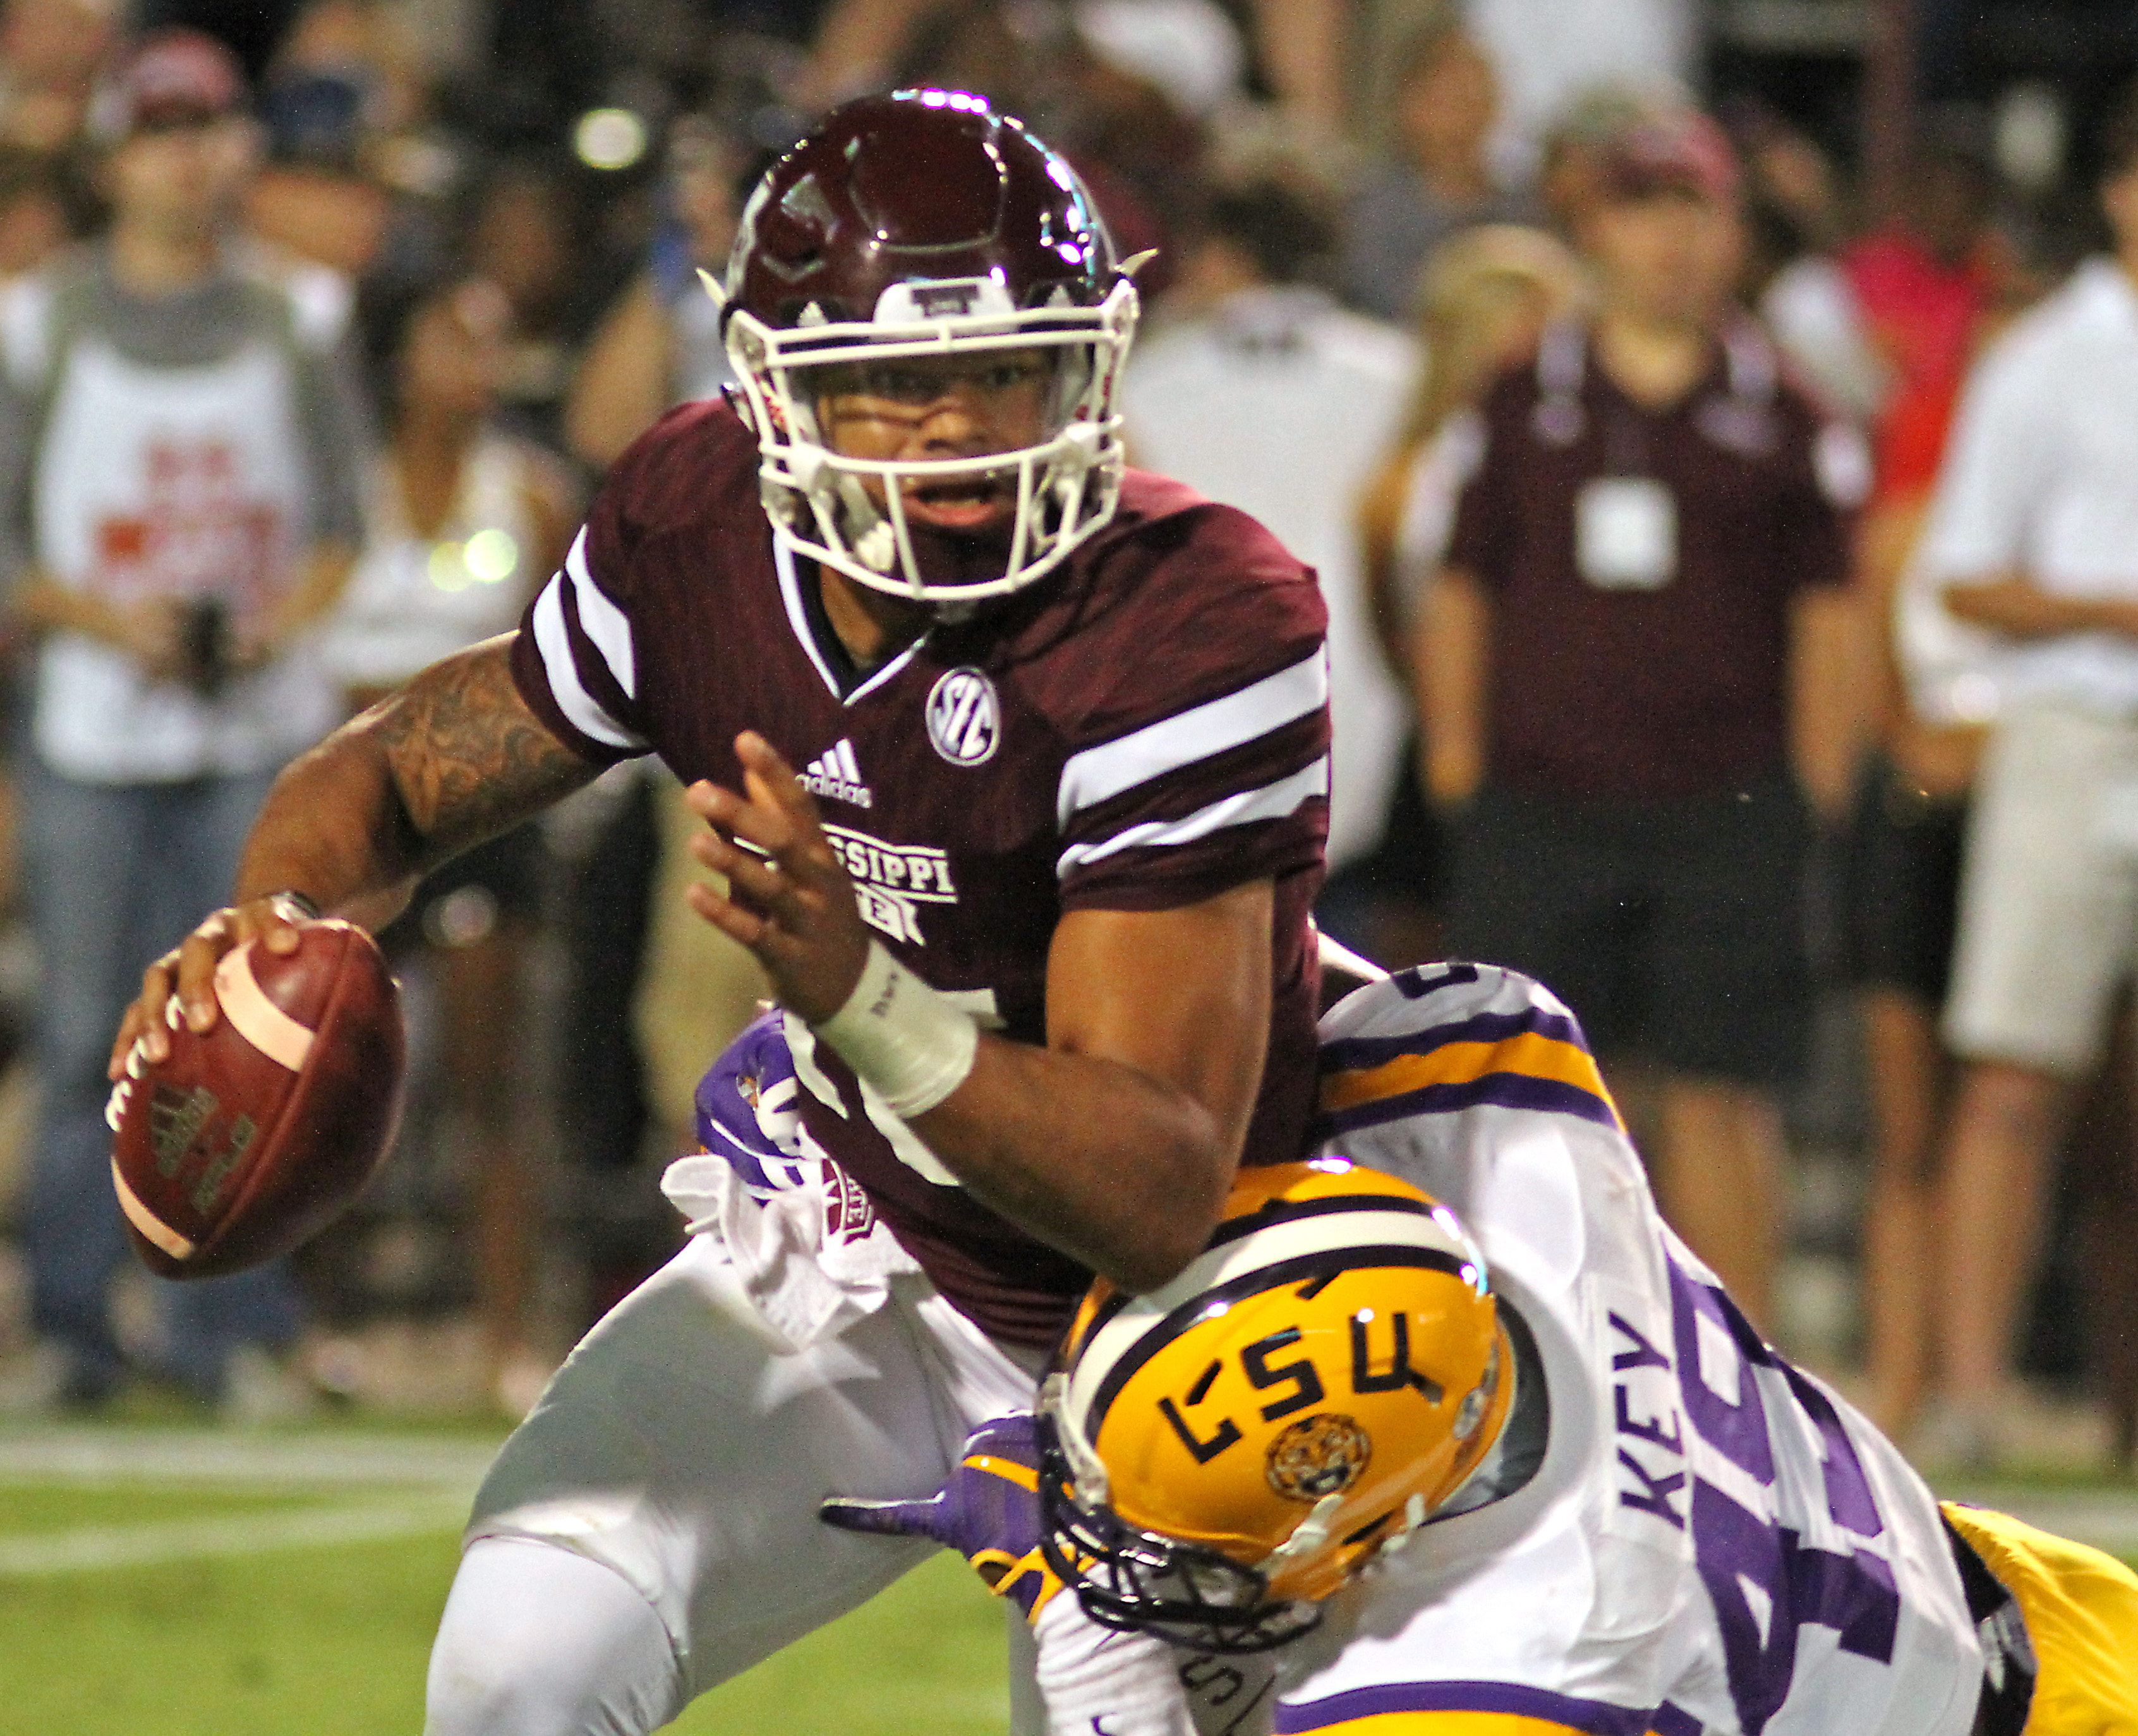 Mississippi State quarterback Dak Prescott, left, is sacked by LSU defender Arden Key, right, during the first half of an NCAA college football game in Starkville, Miss., on Sat., Sept 12, 2015, LSU won 21-19.  (AP Photo/Jim Lytle)